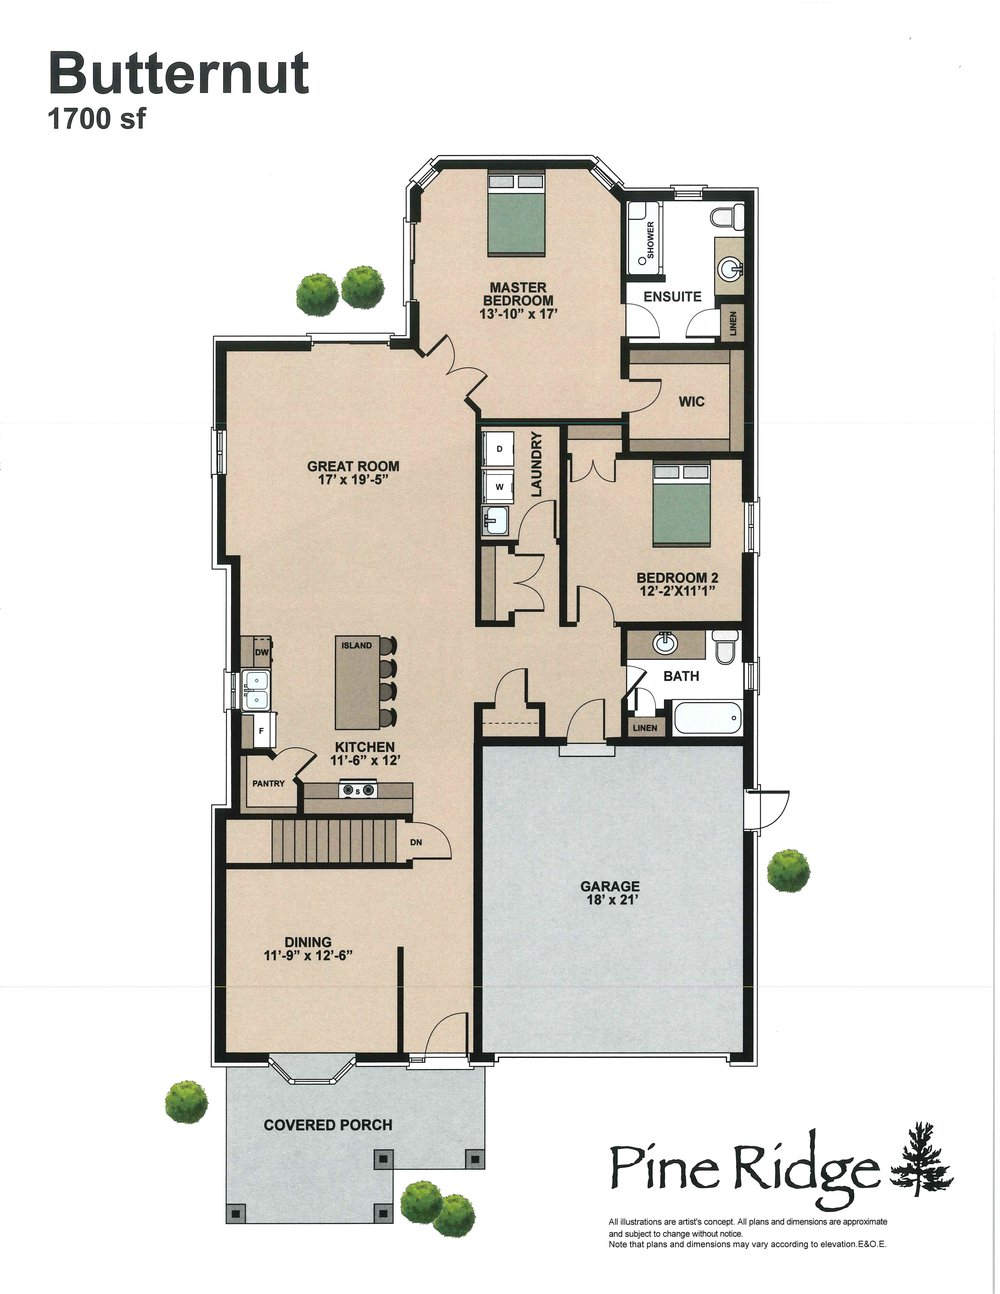 pineridge floorplans 1_Page_8.jpg